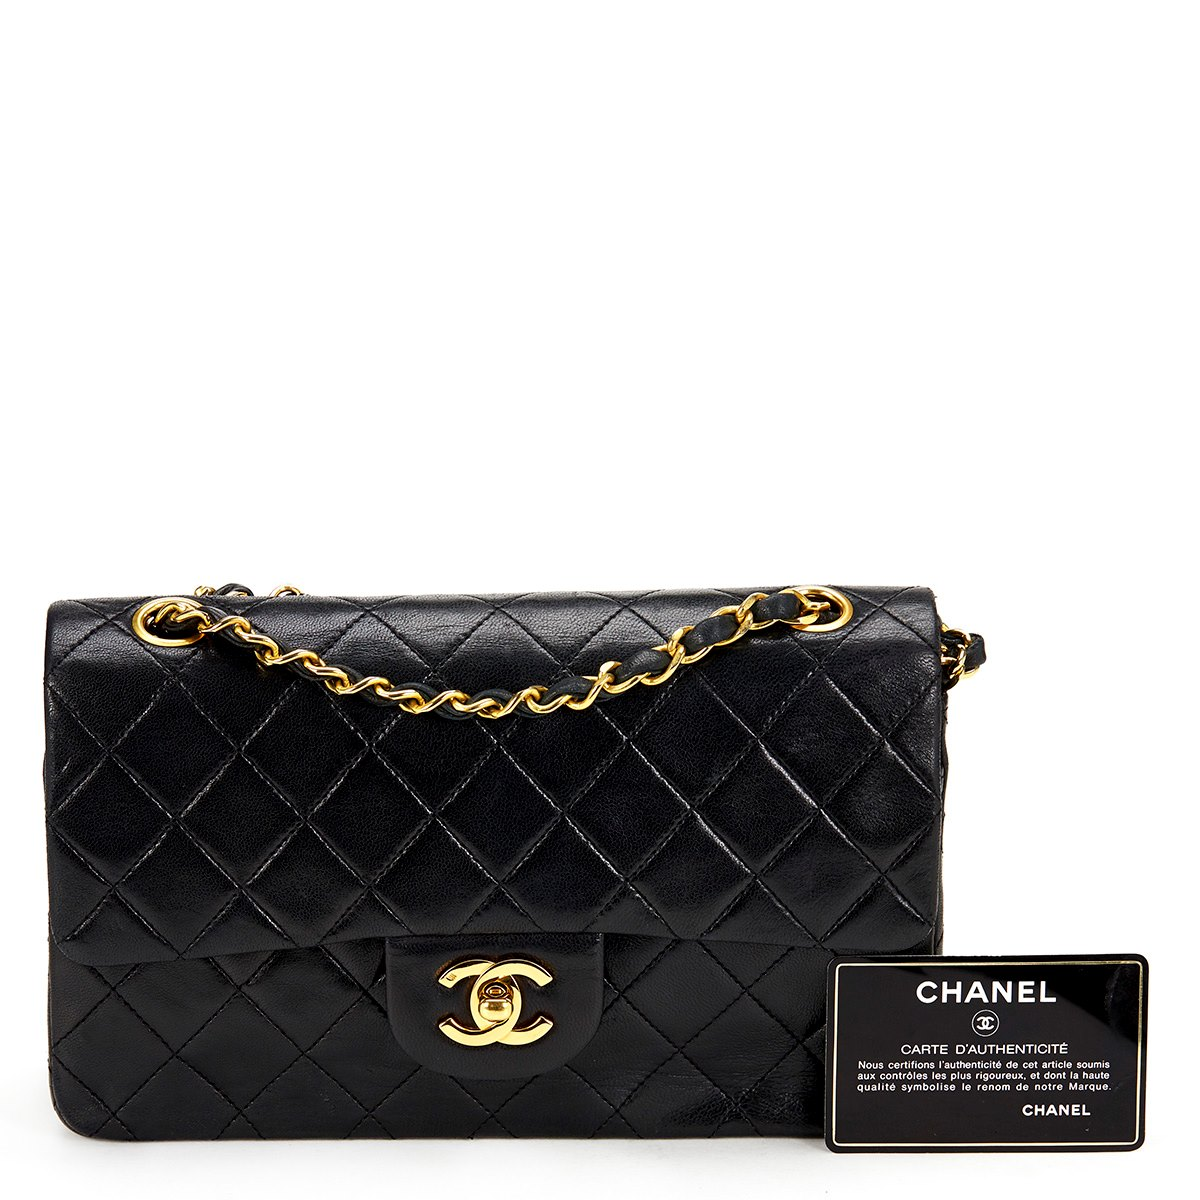 chanel small classic double flap bag 1987 hb265 second hand handbags. Black Bedroom Furniture Sets. Home Design Ideas